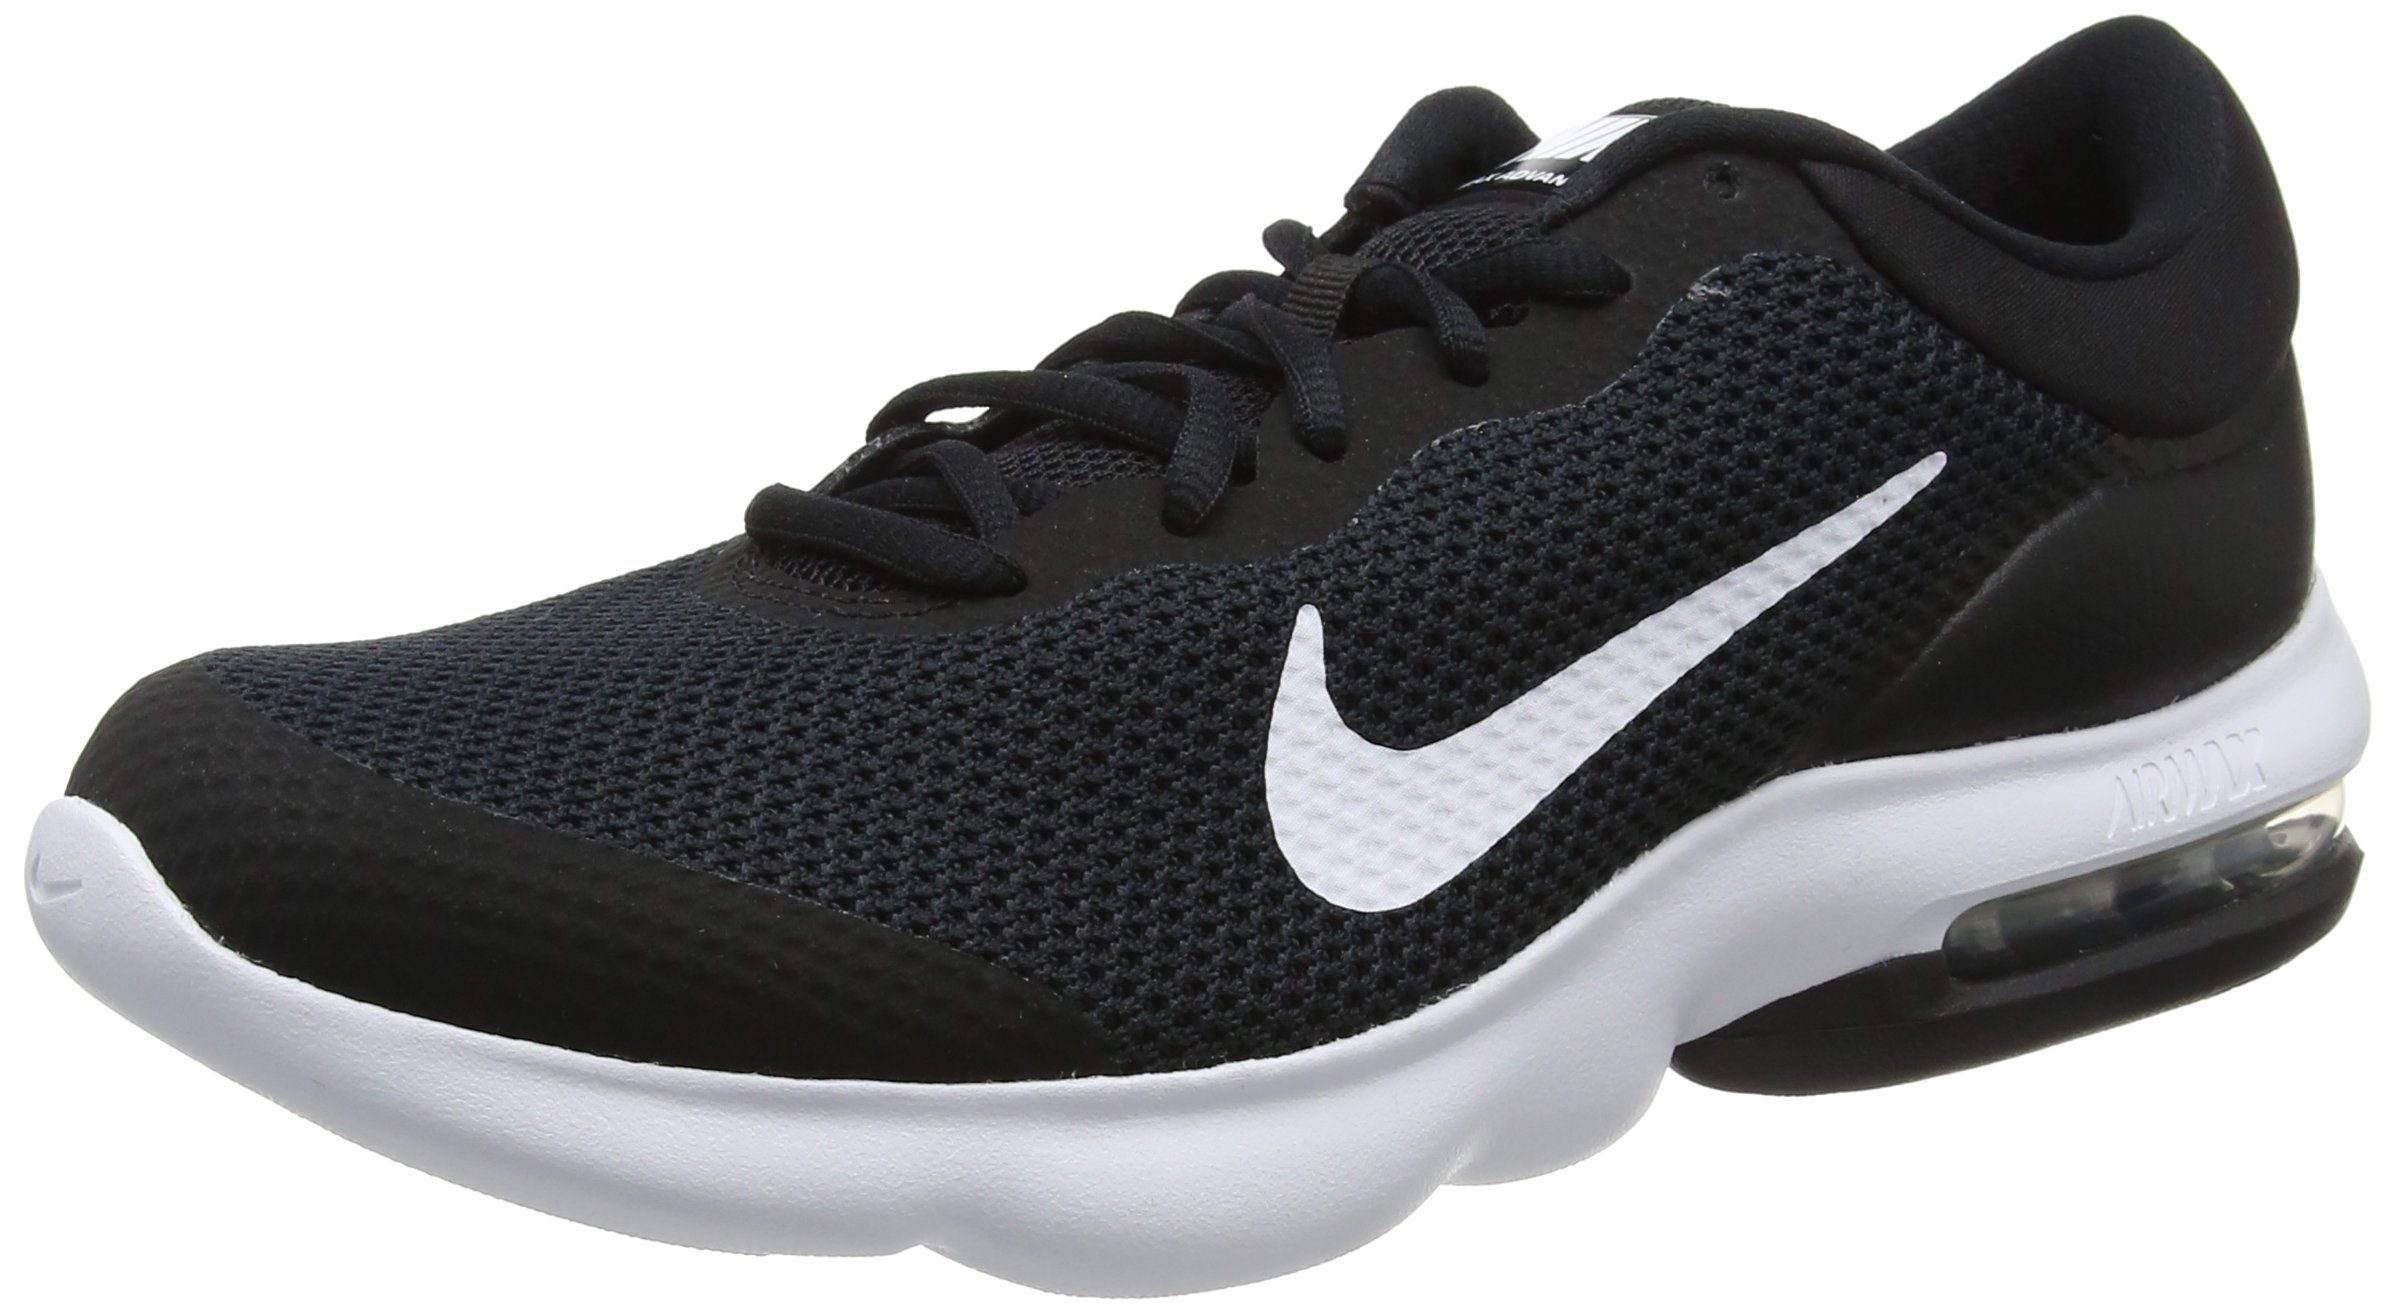 NIKE Men's Air Max Advantage Running Shoe Black/White Size 11 M US